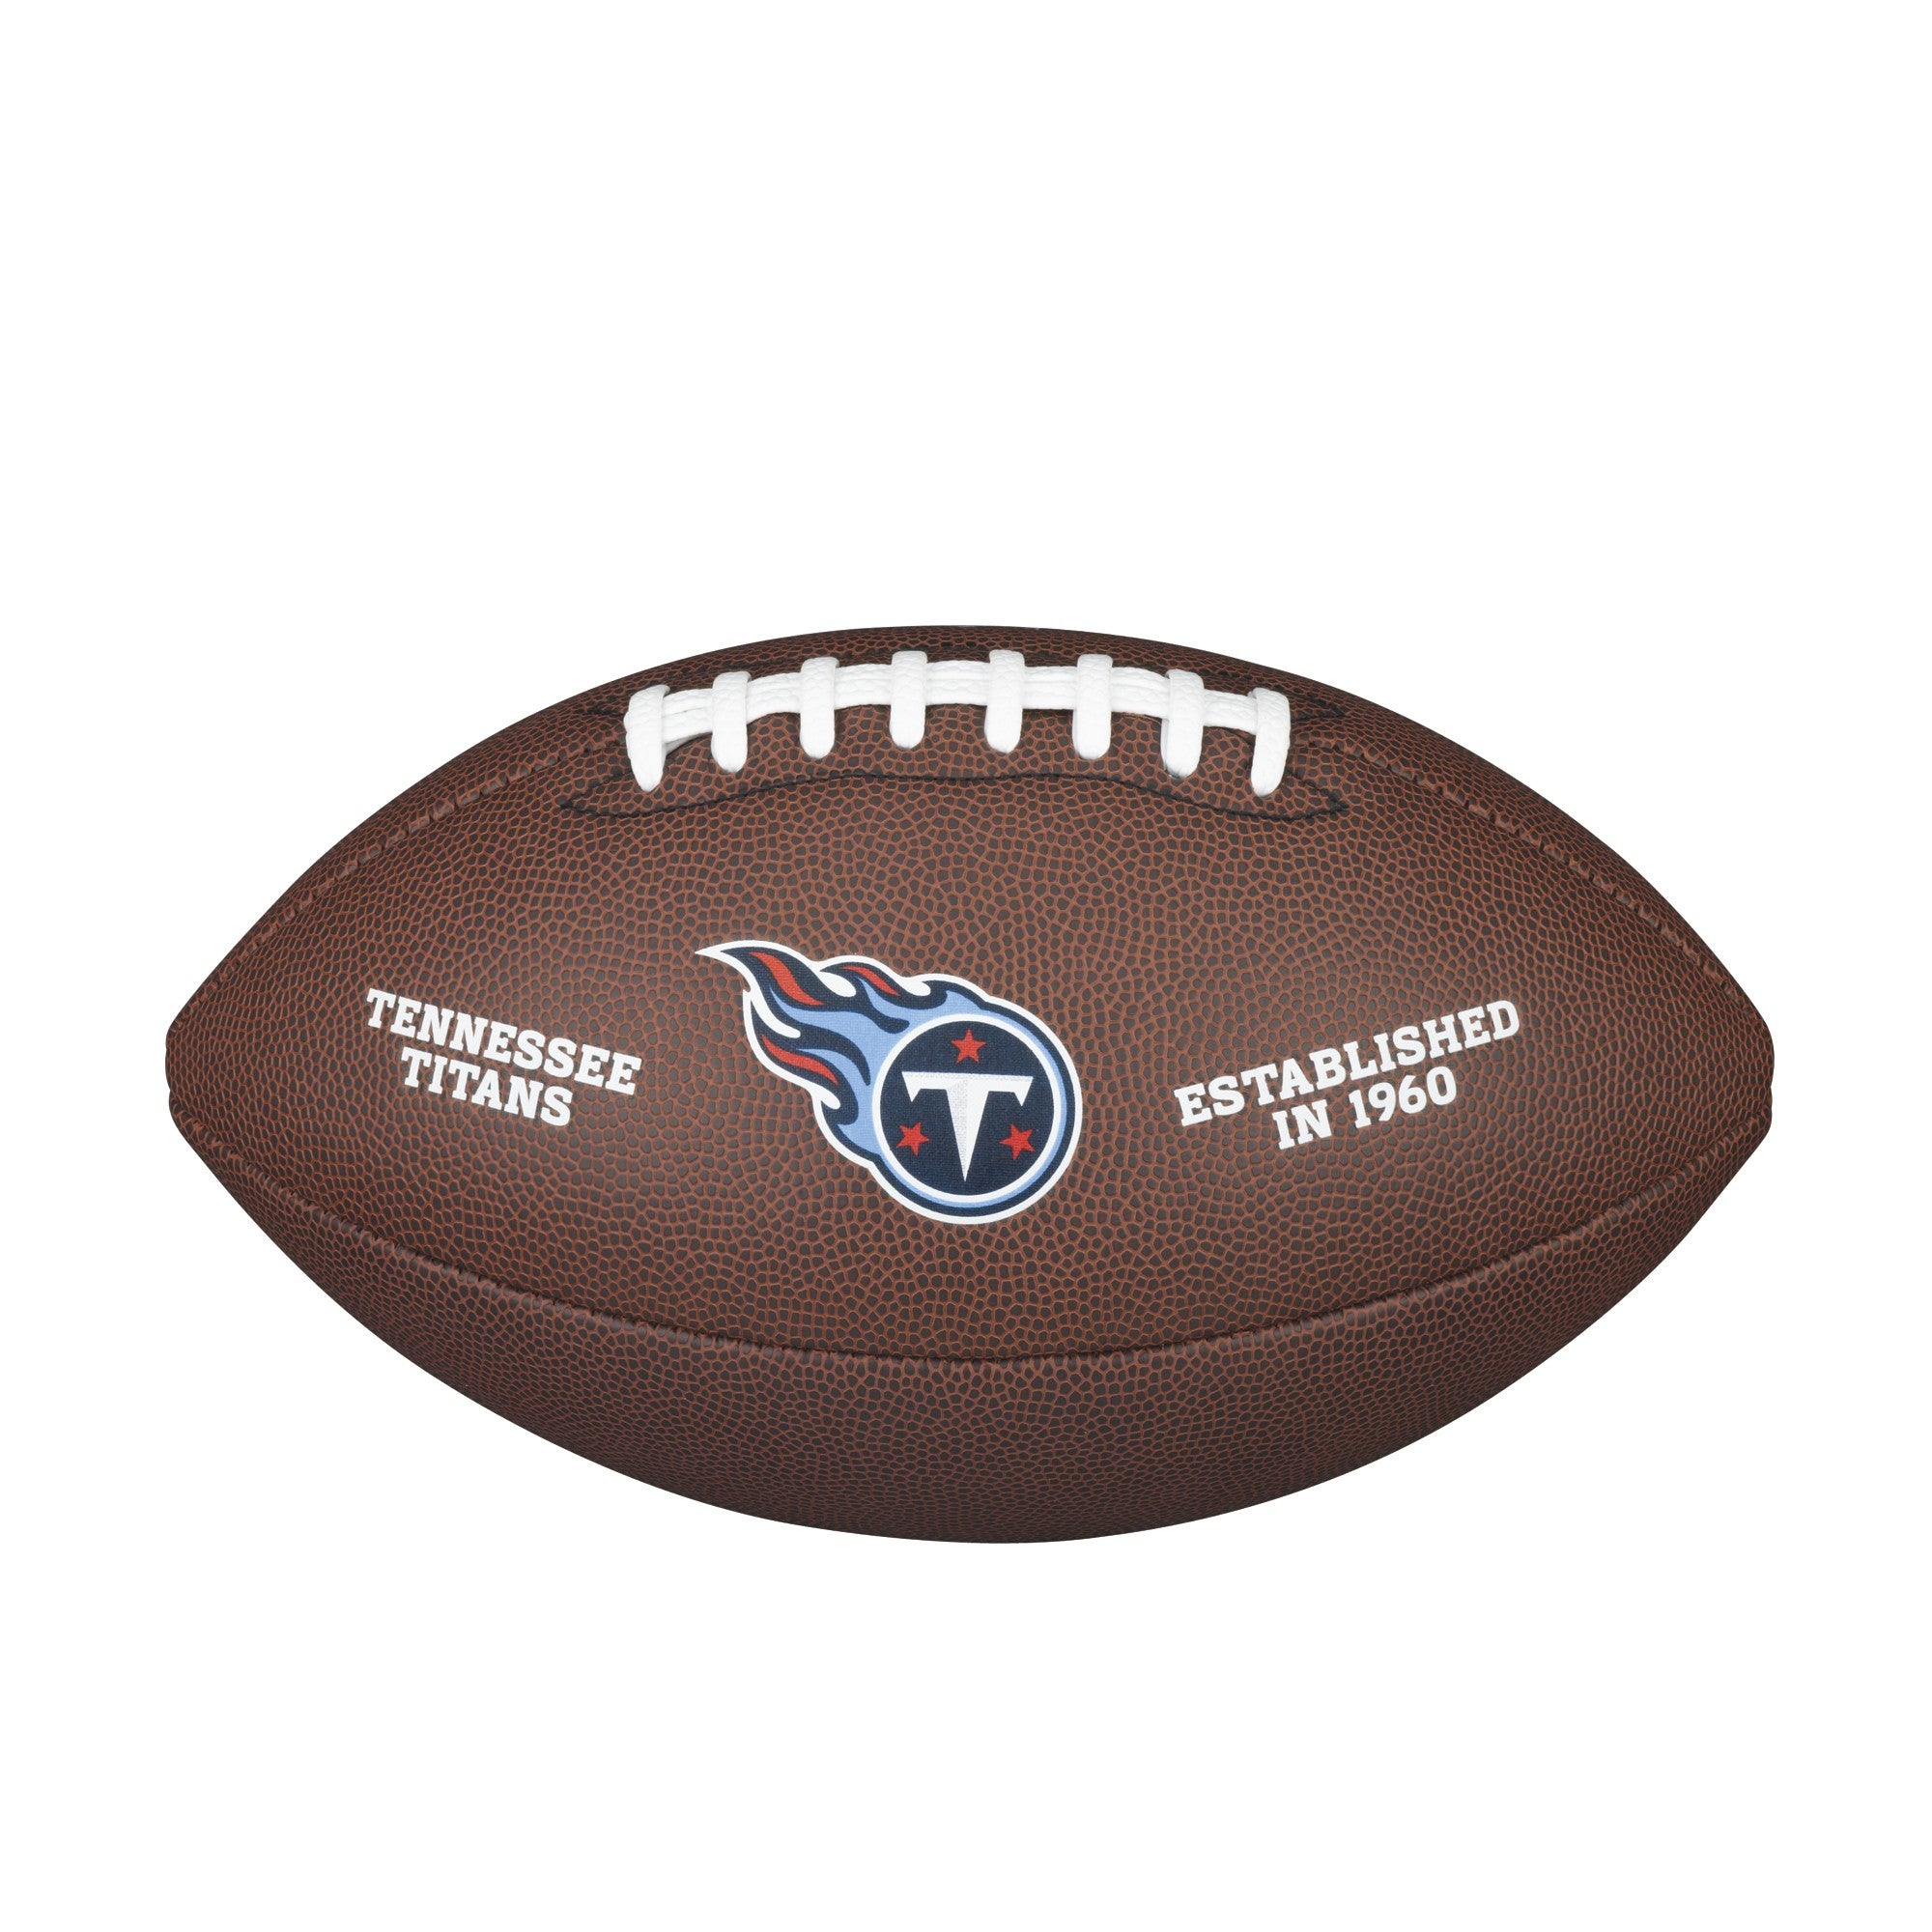 NFL TEAM LOGO COMPOSITE FOOTBALL - OFFICIAL, TENNESSEE TITANS